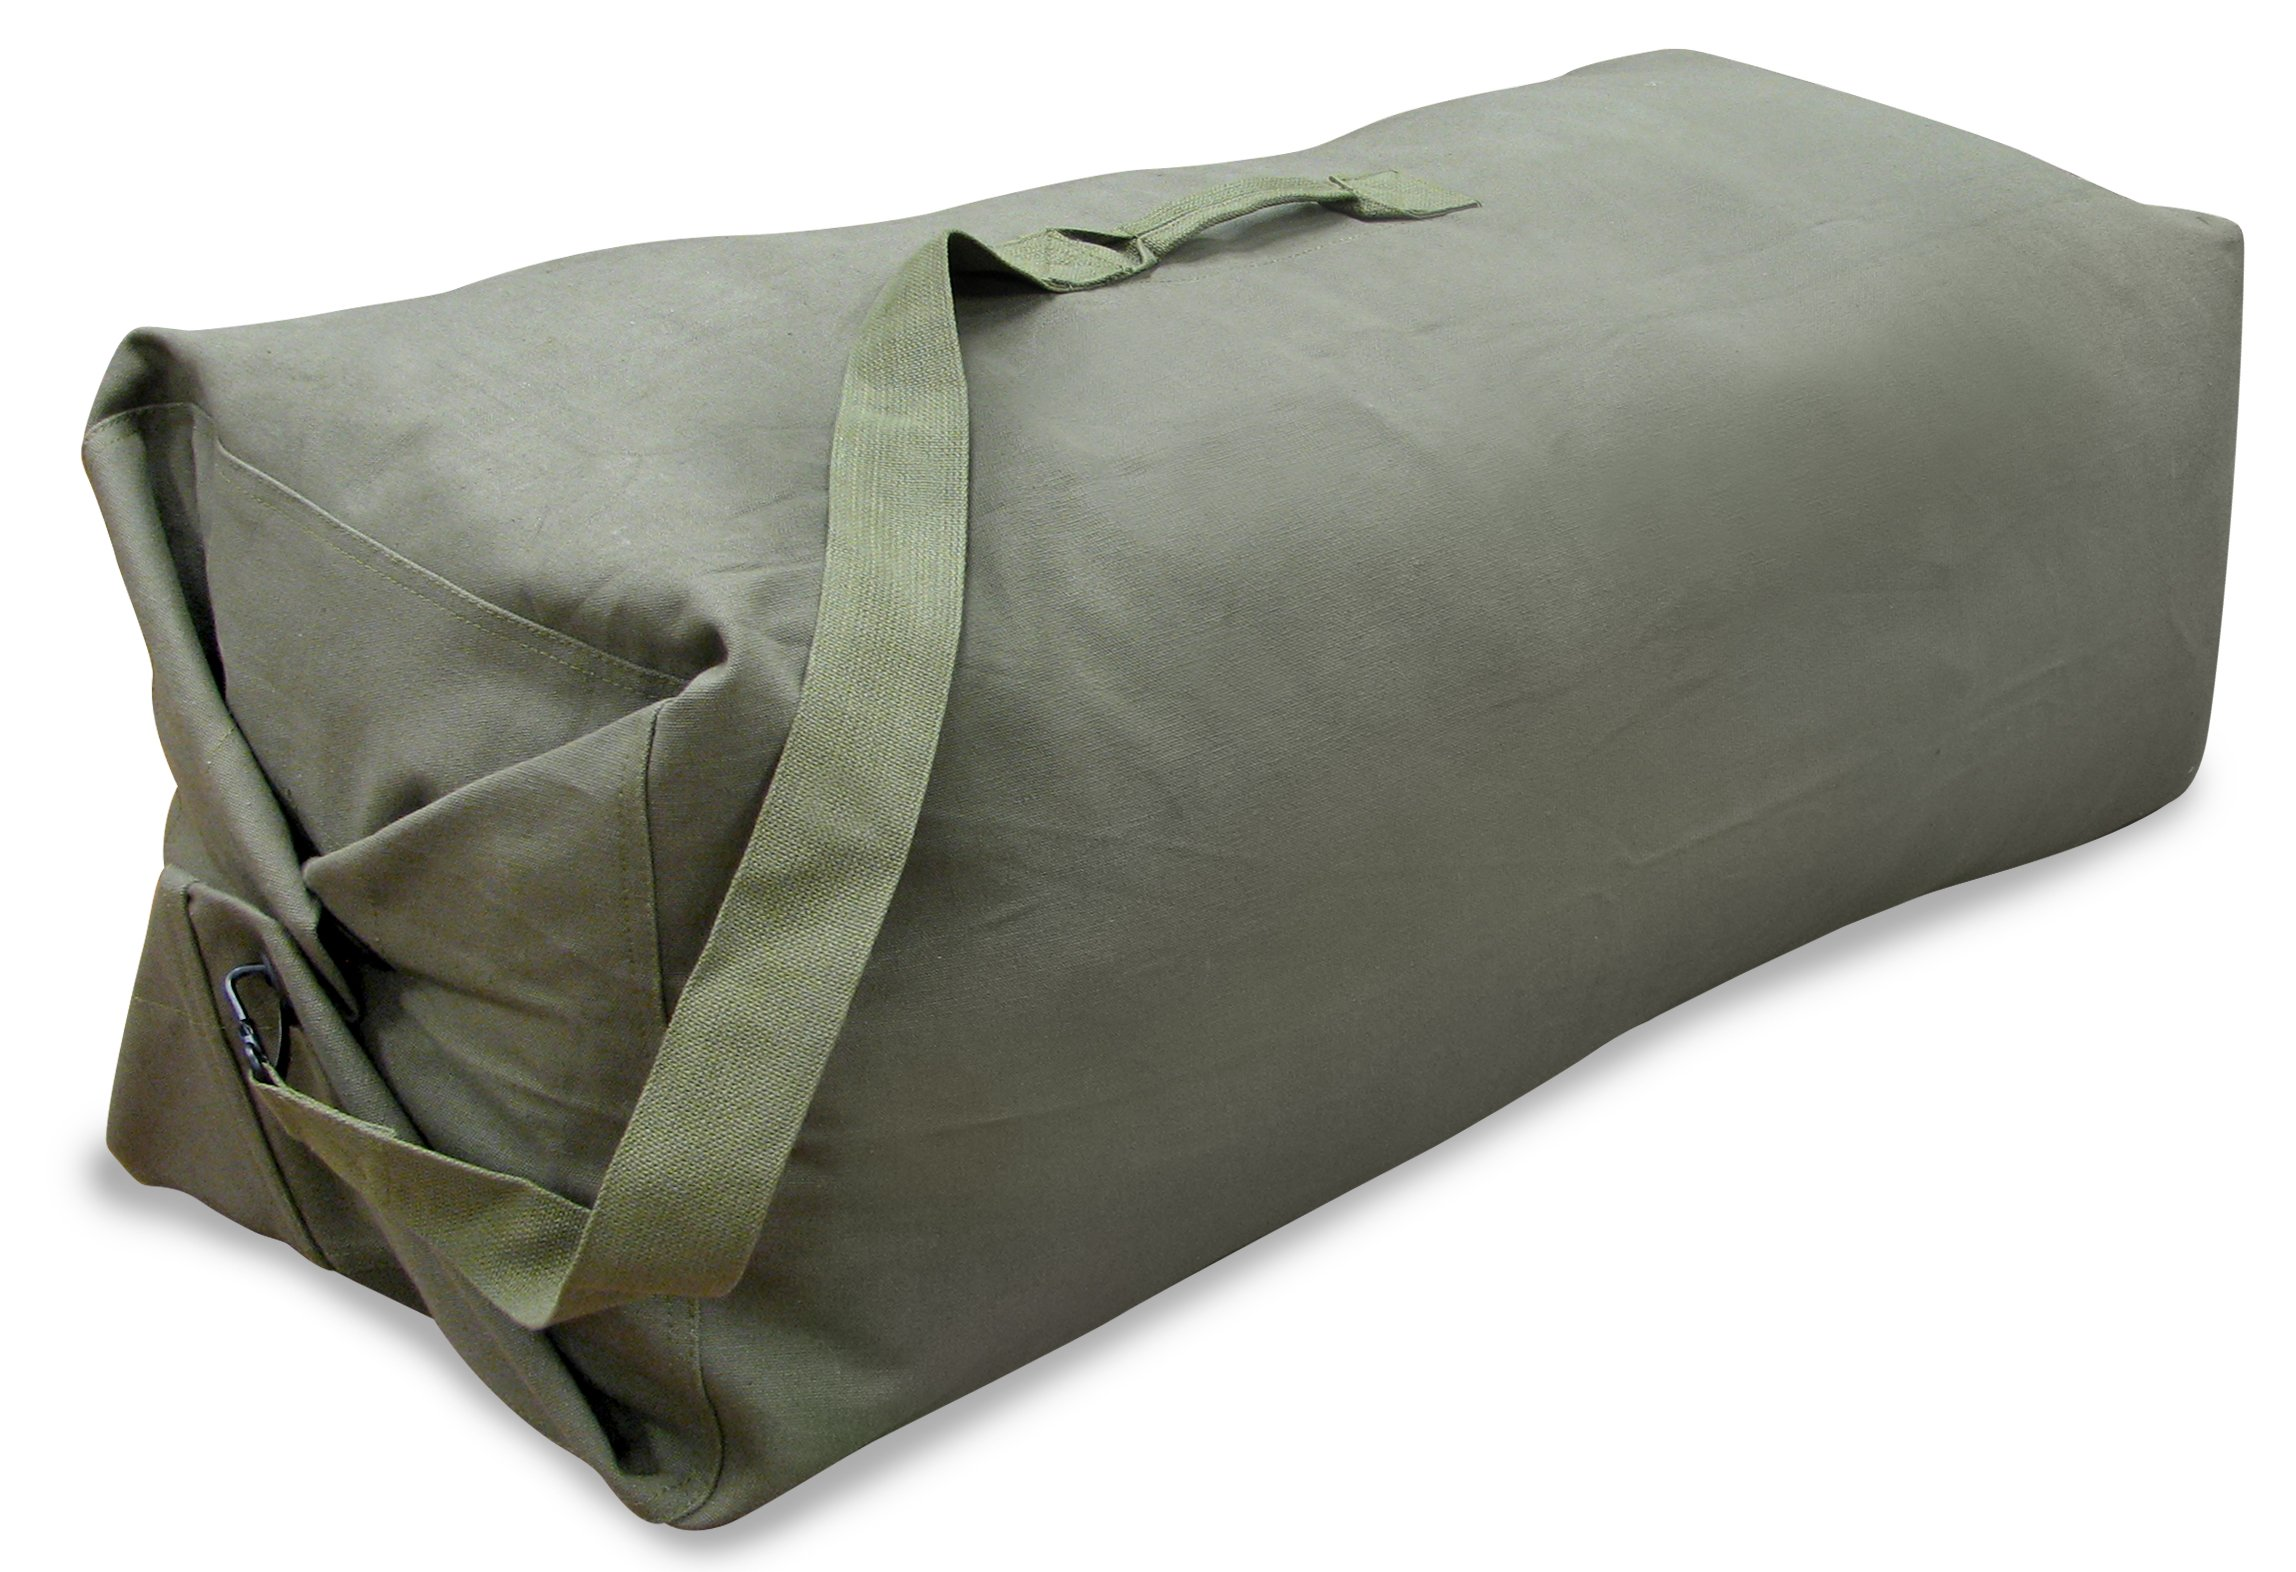 Stansport 1200 Deluxe Duffel Bag with Shoulder Strap, 42'' X 12'' X 12'', Olive Green